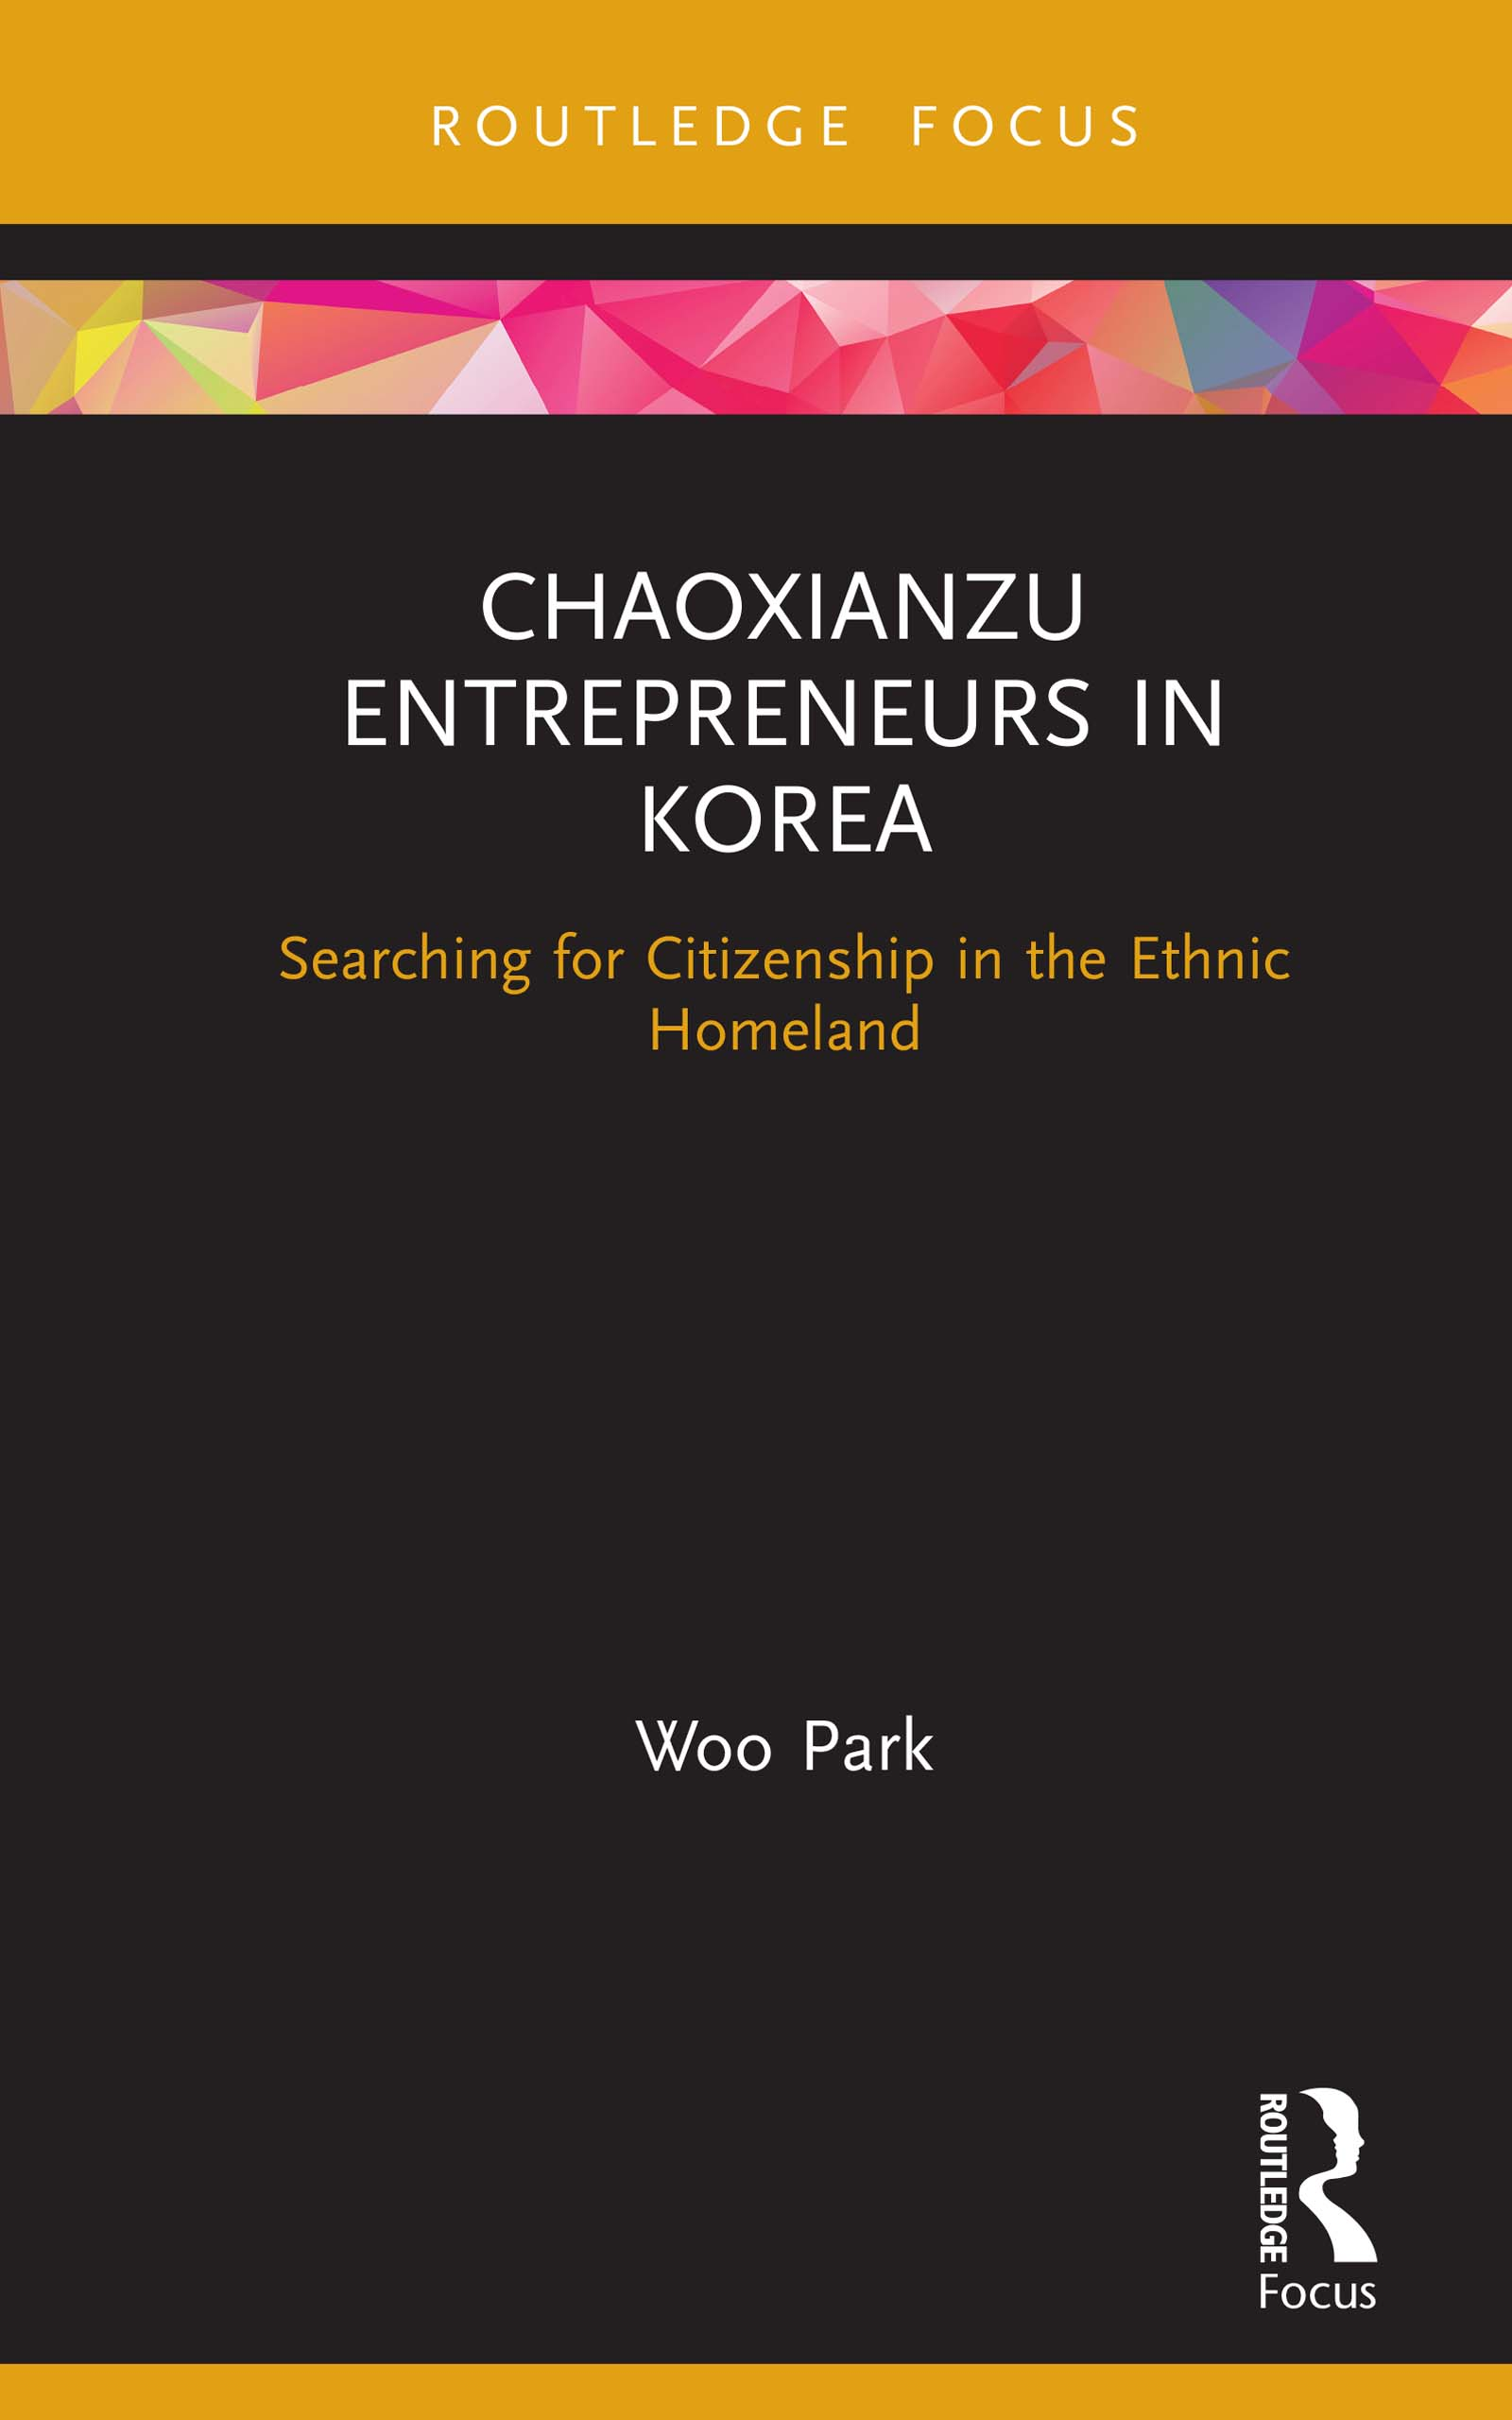 Chaoxianzu Entrepreneurs in Korea: Searching for Citizenship in the Ethnic Homeland book cover